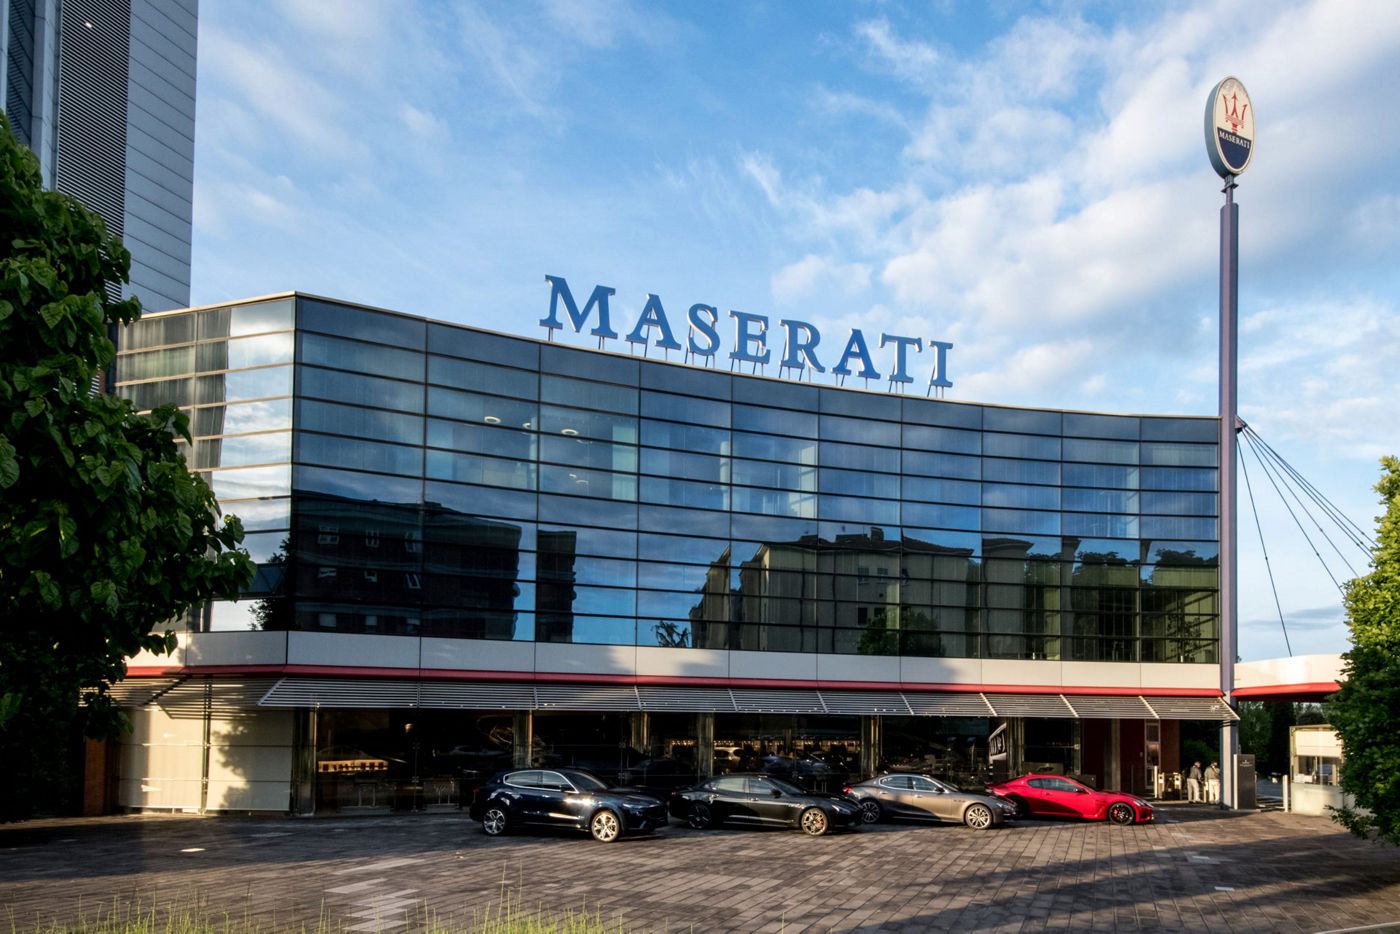 105 years of Maserati in Bologna and start of a new Era - Maserati Headquarter